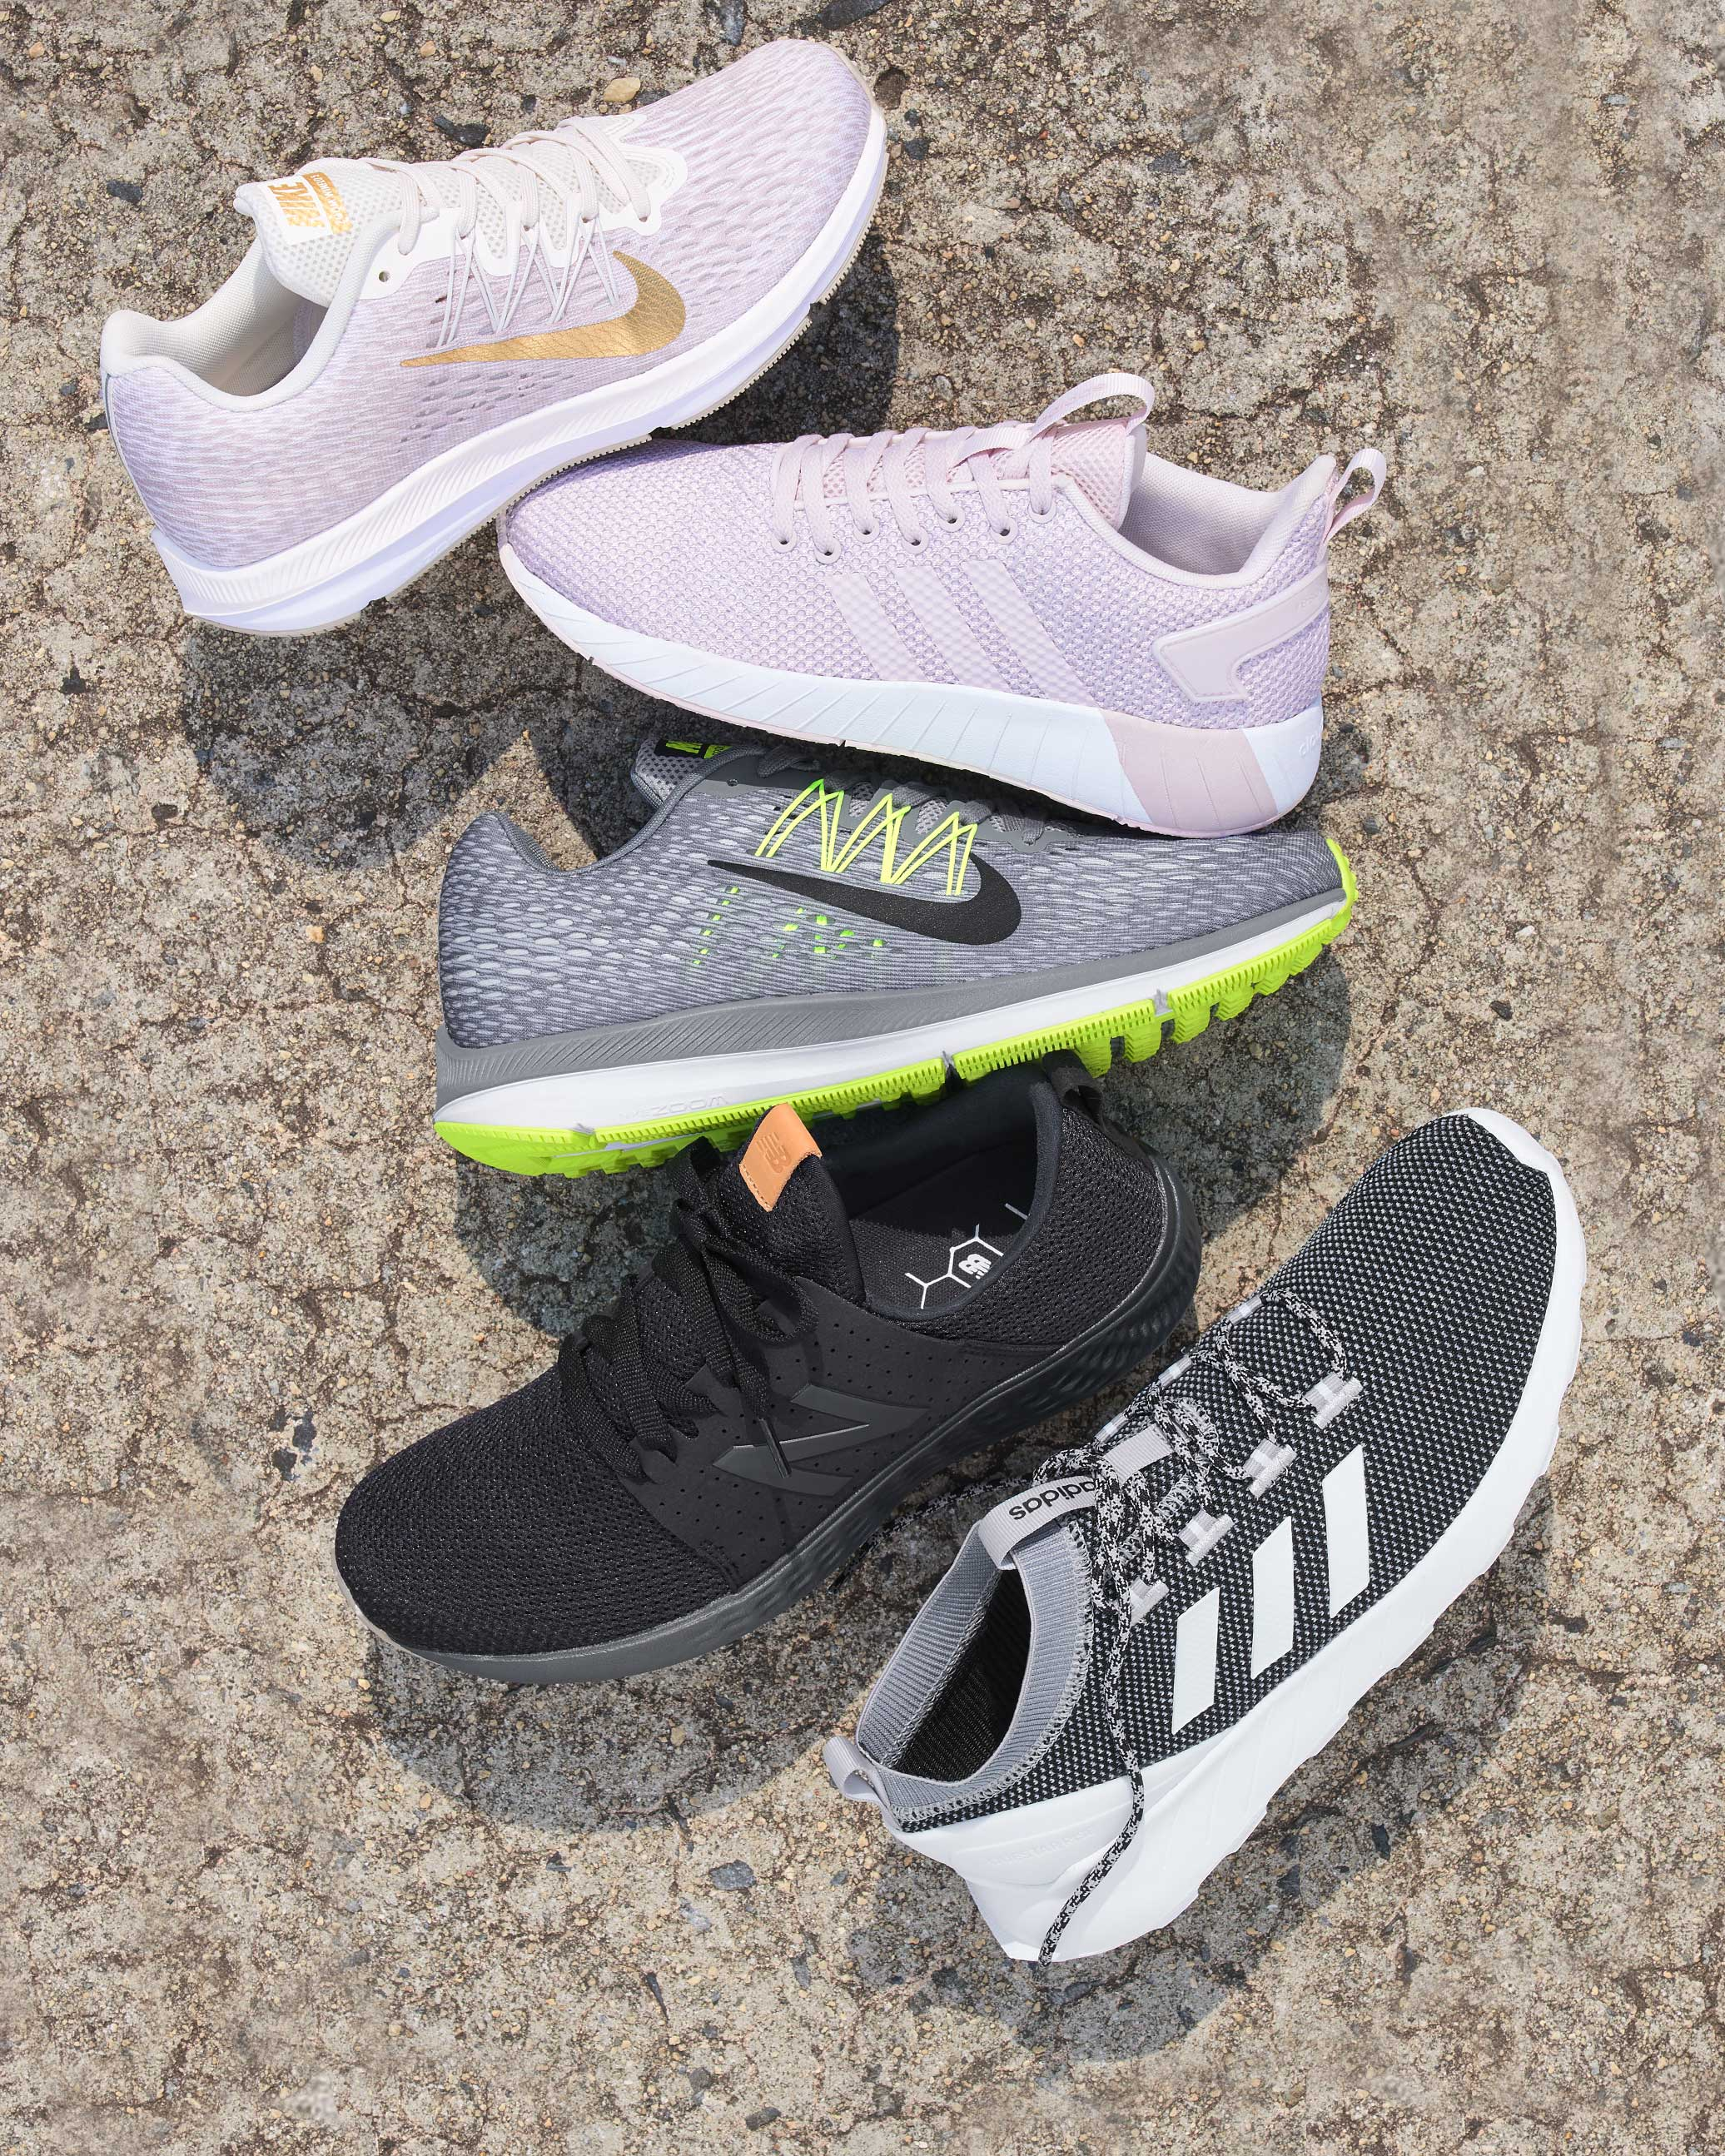 Assorted Nike, adidas, and New Balance athletic shoes